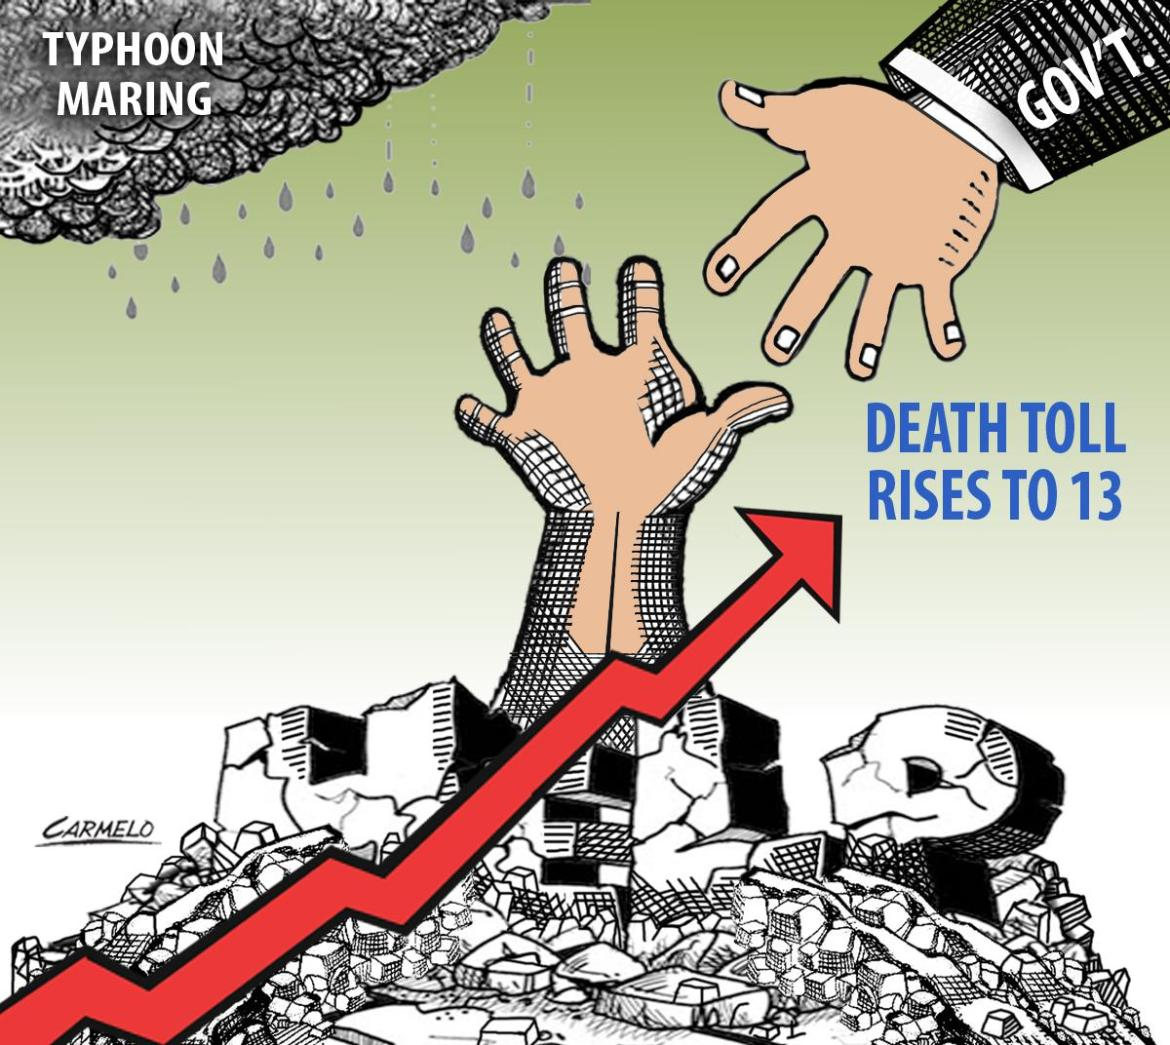 'Maring' death toll rises to 13